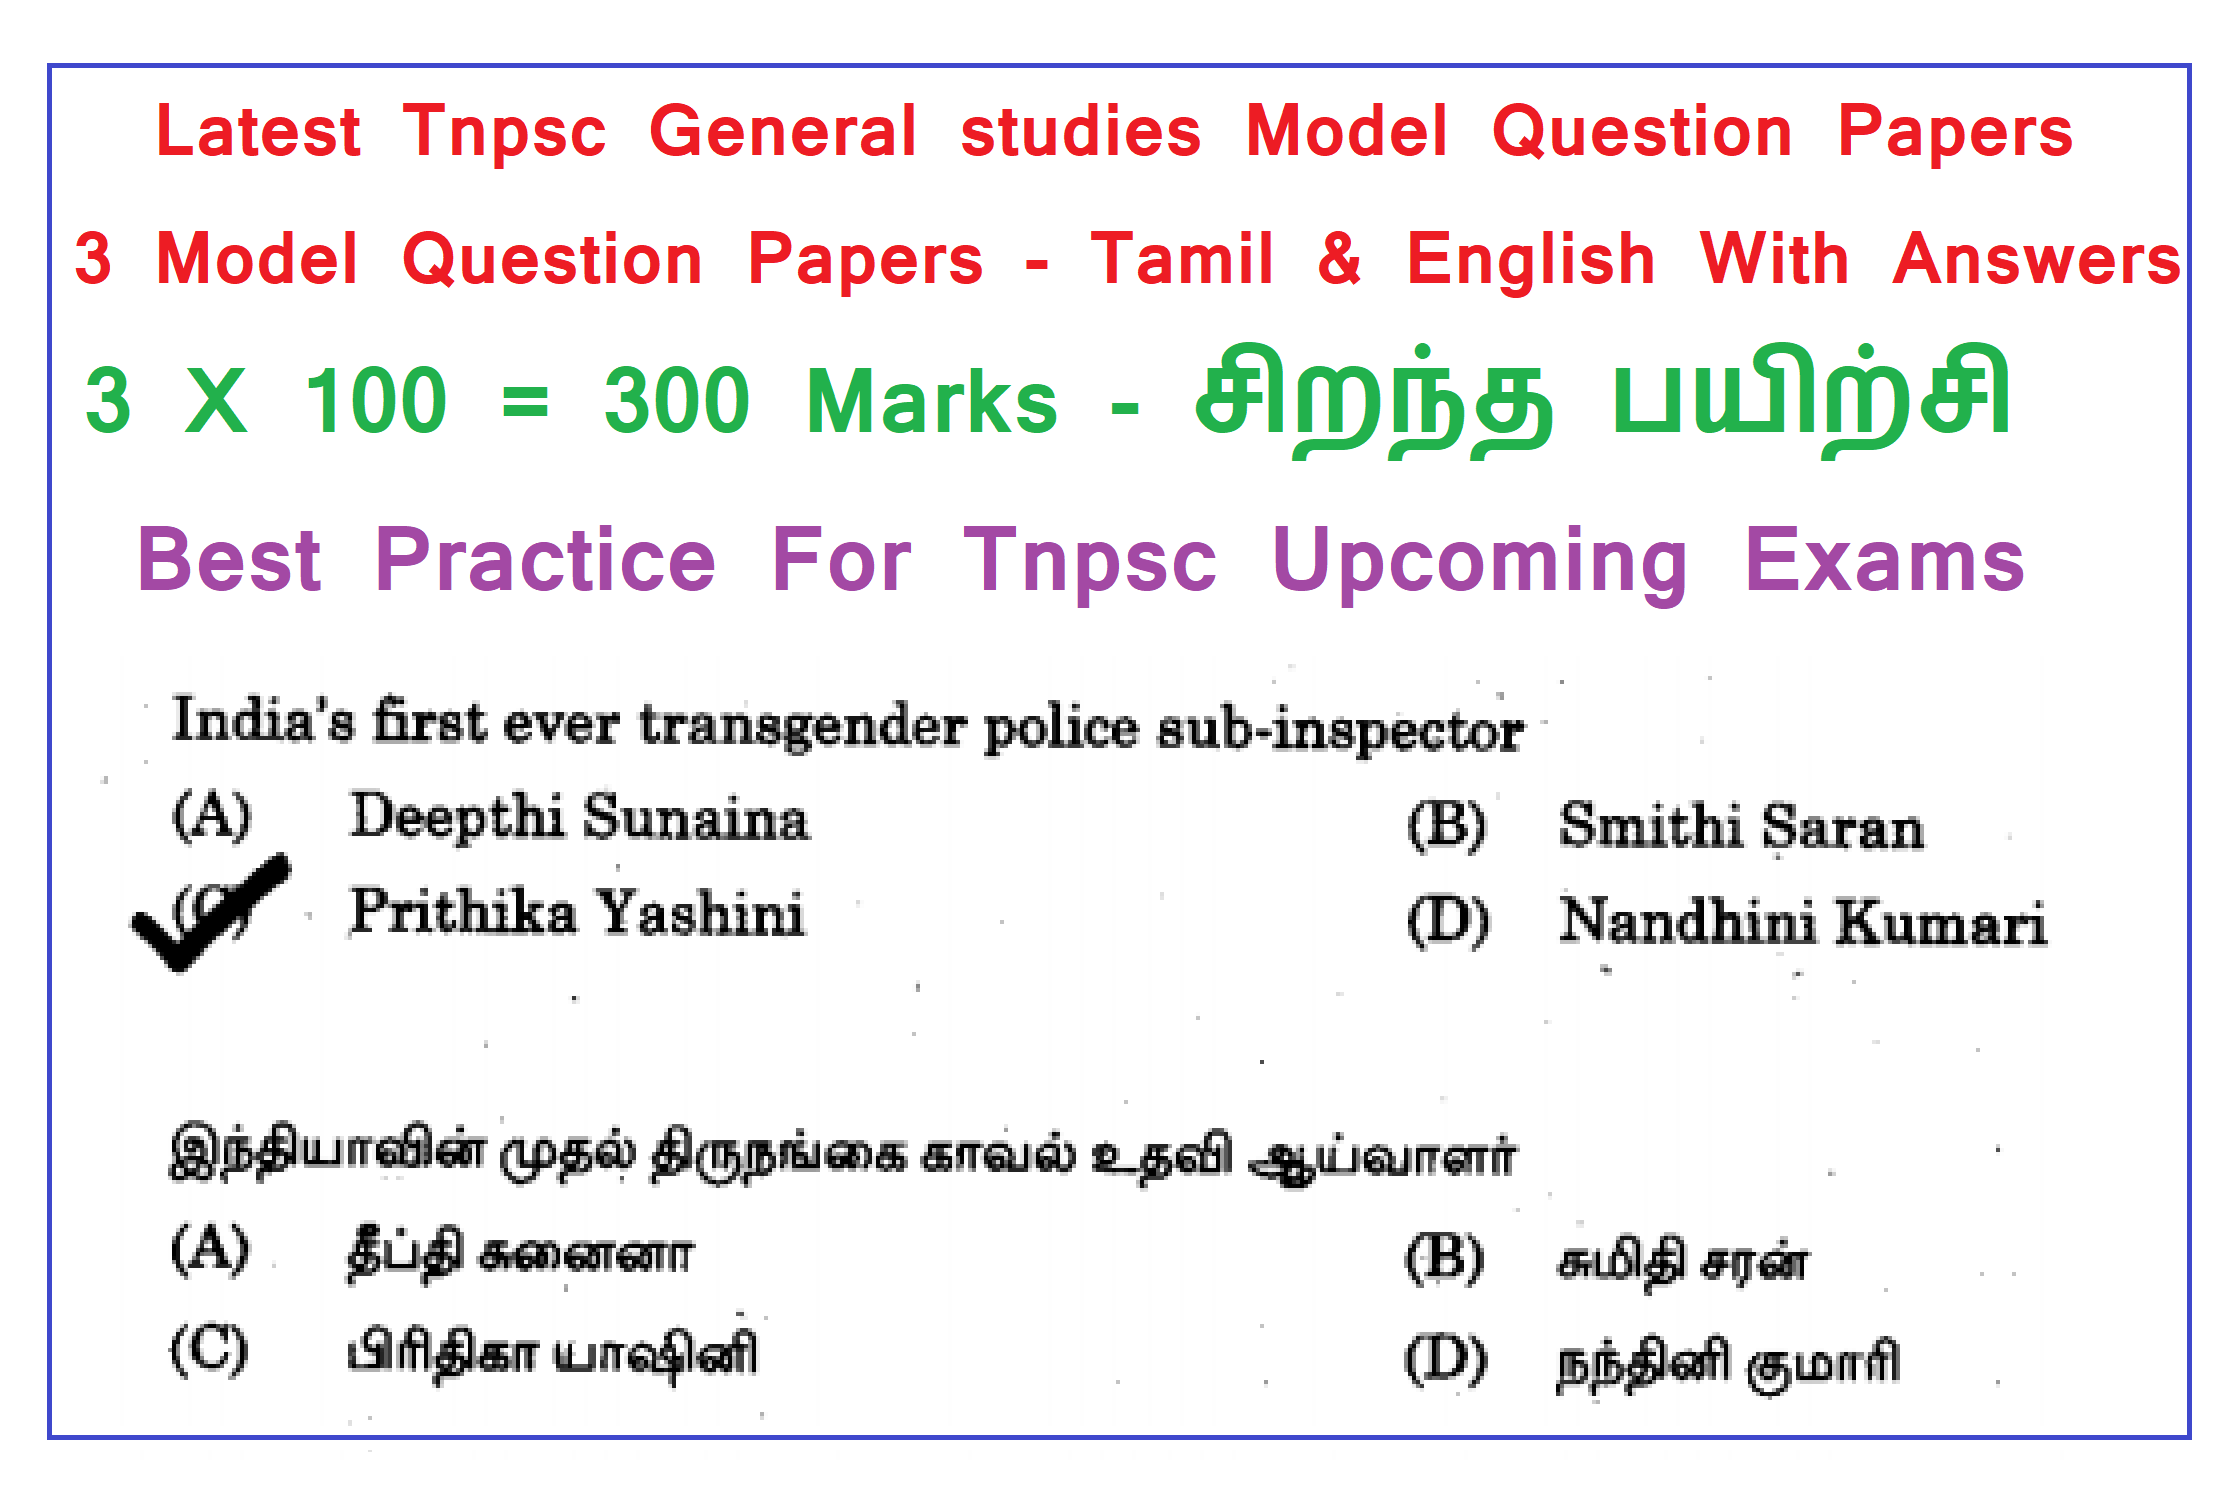 model essays for general paper The things you can do and learn online for general paper (and project work) students of gp (75) dushan boodhena said: december 10 essays written will be graded and evaluated for free by world and country toppers in general paper the best essays will also be rewarded.